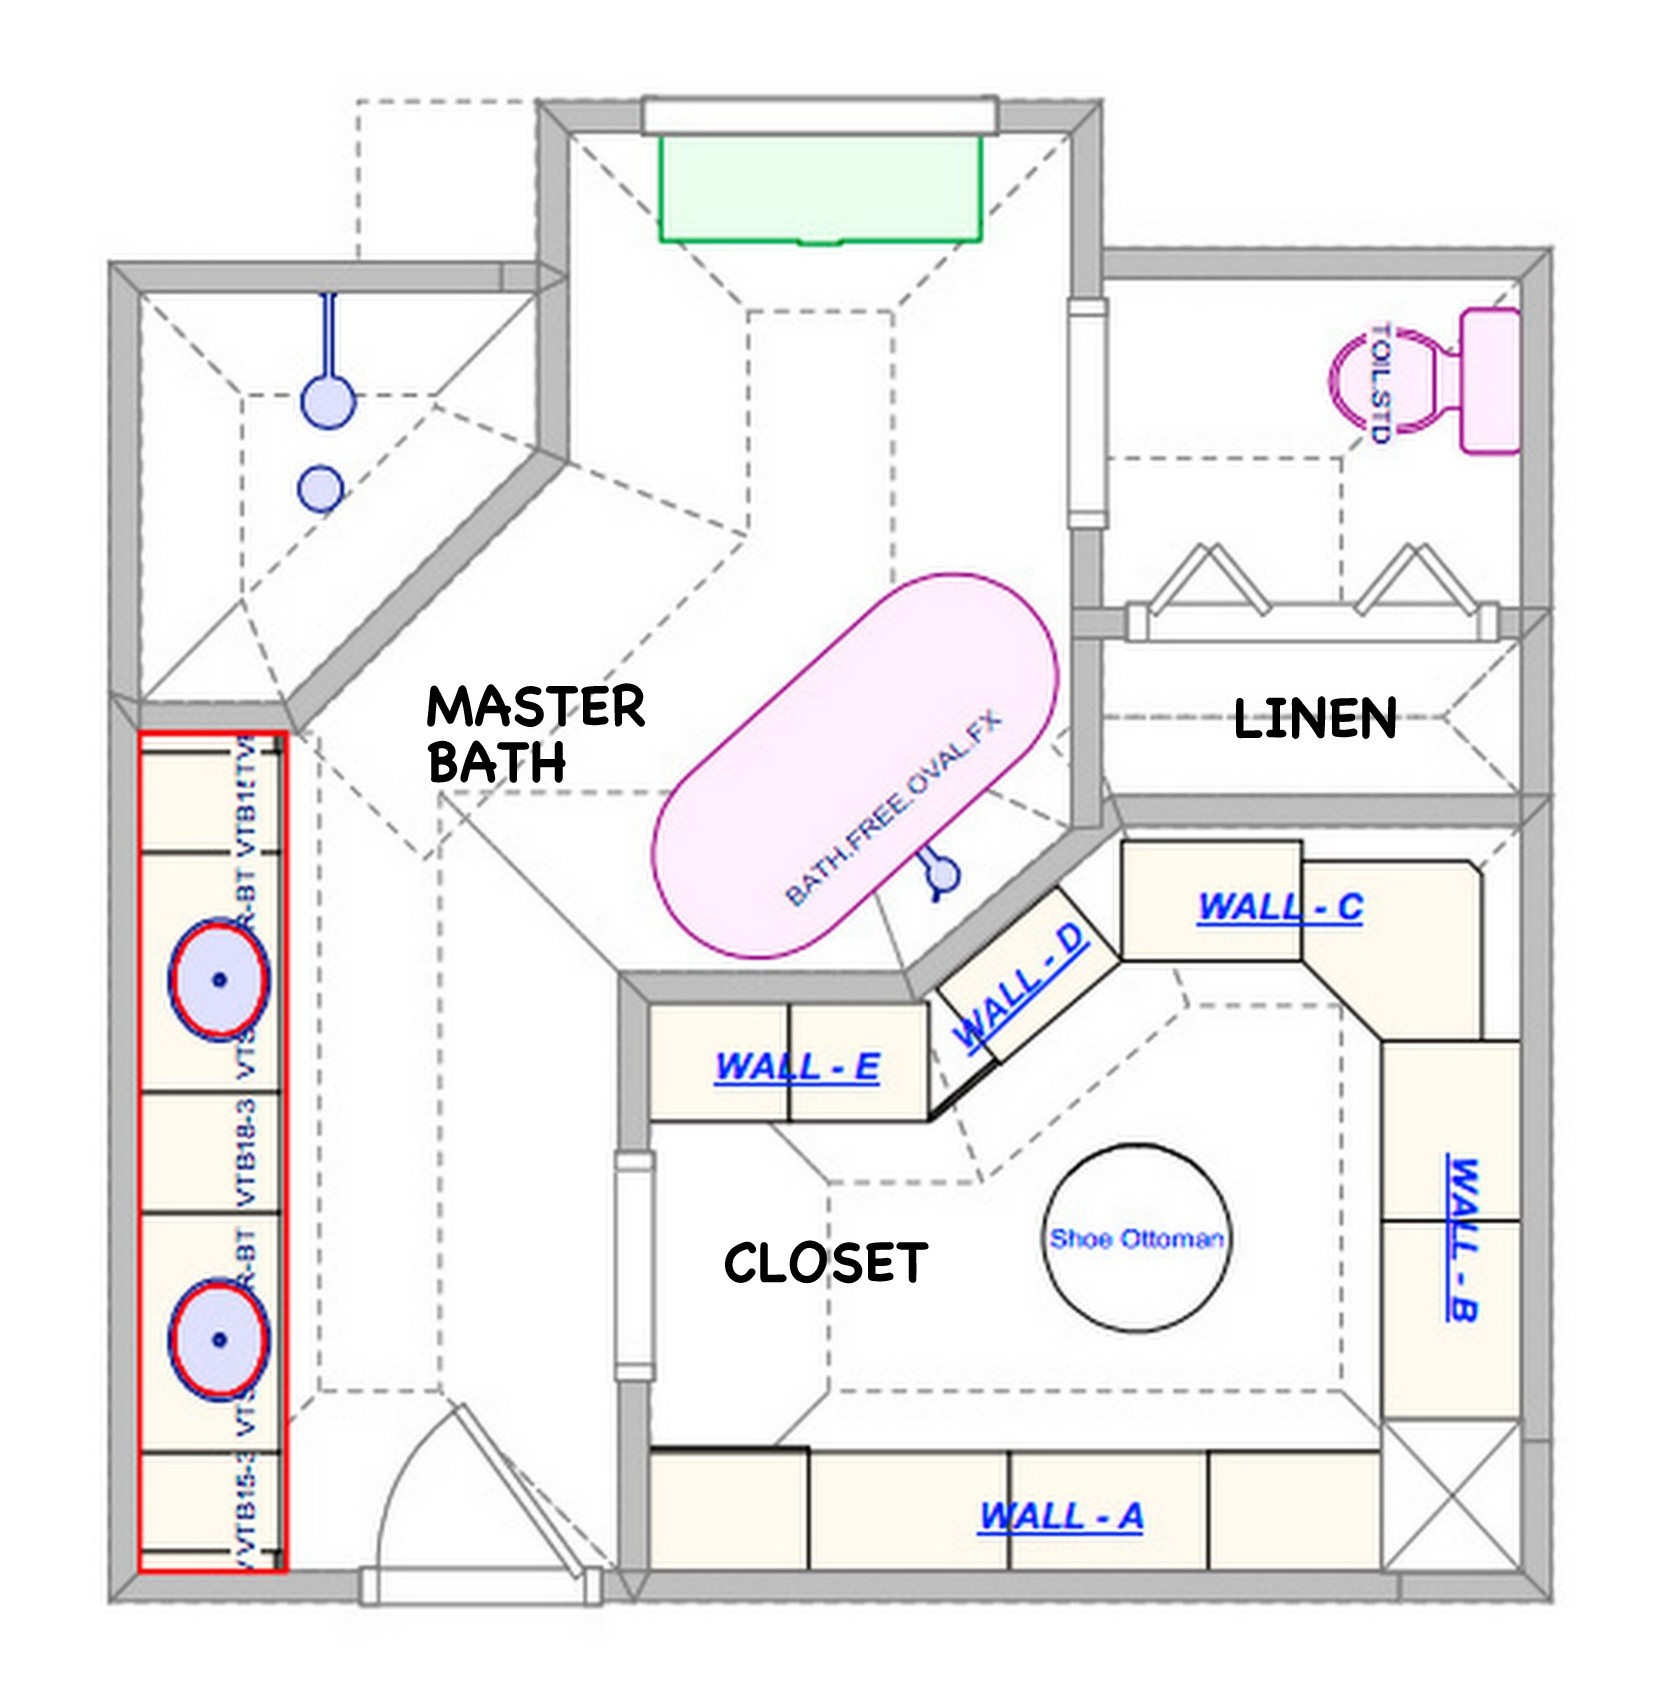 Elite Master Bathroom Layouts Modern Floor Plans Within 4 | Pateohotel throughout Beautiful Master Bathroom Layouts